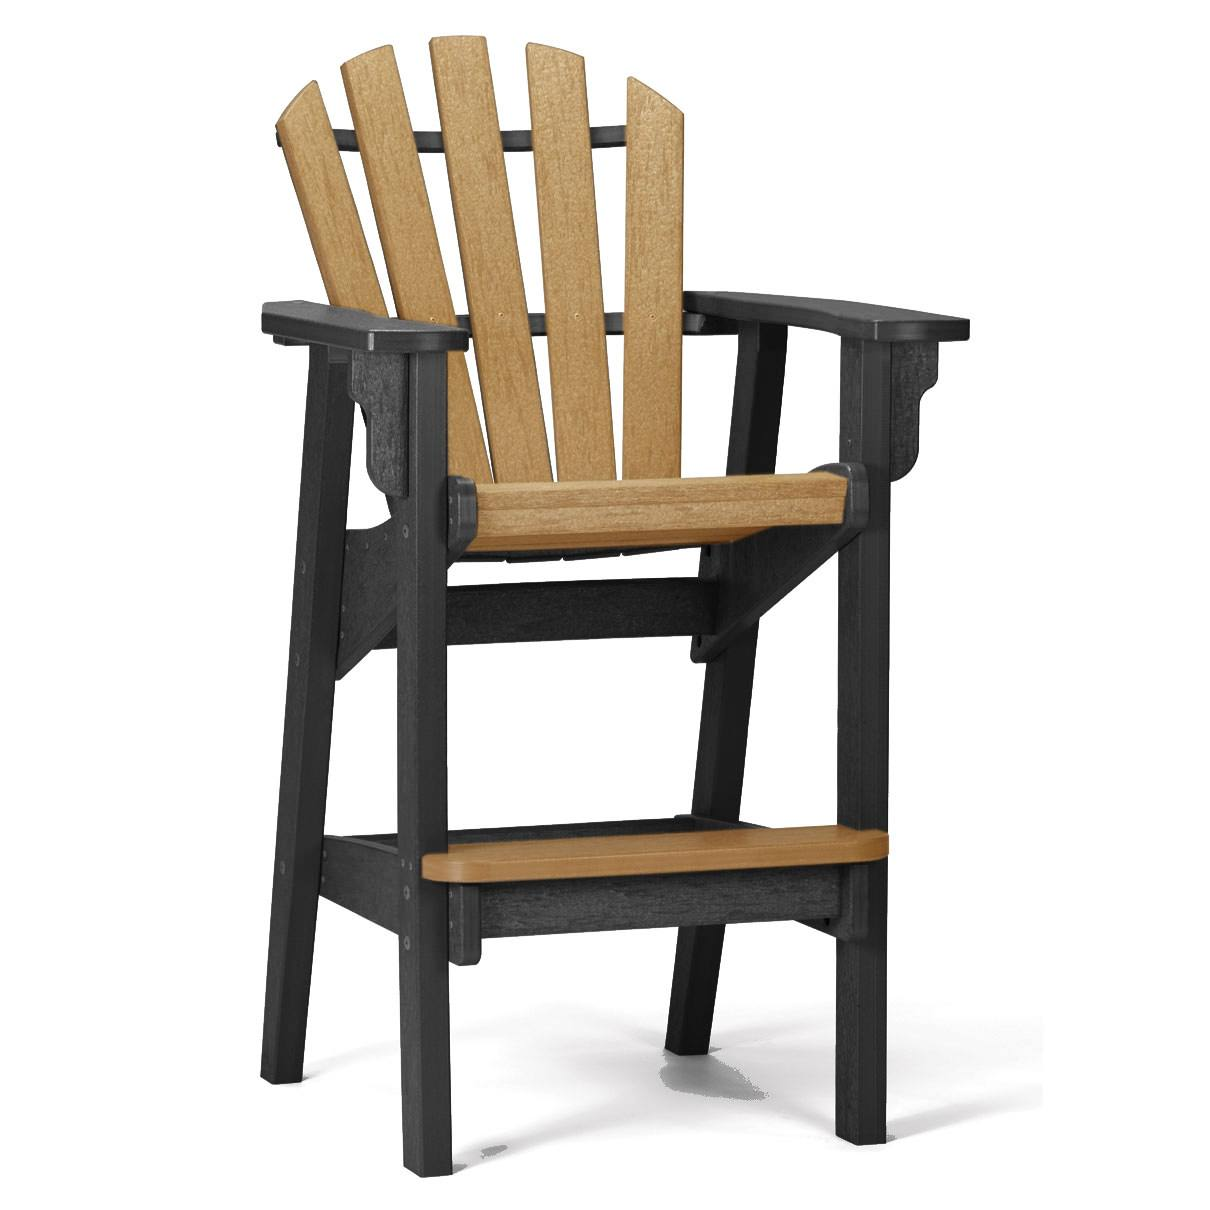 3 in one high chair plans reclining gravity chairs coastal barstool black and cedar